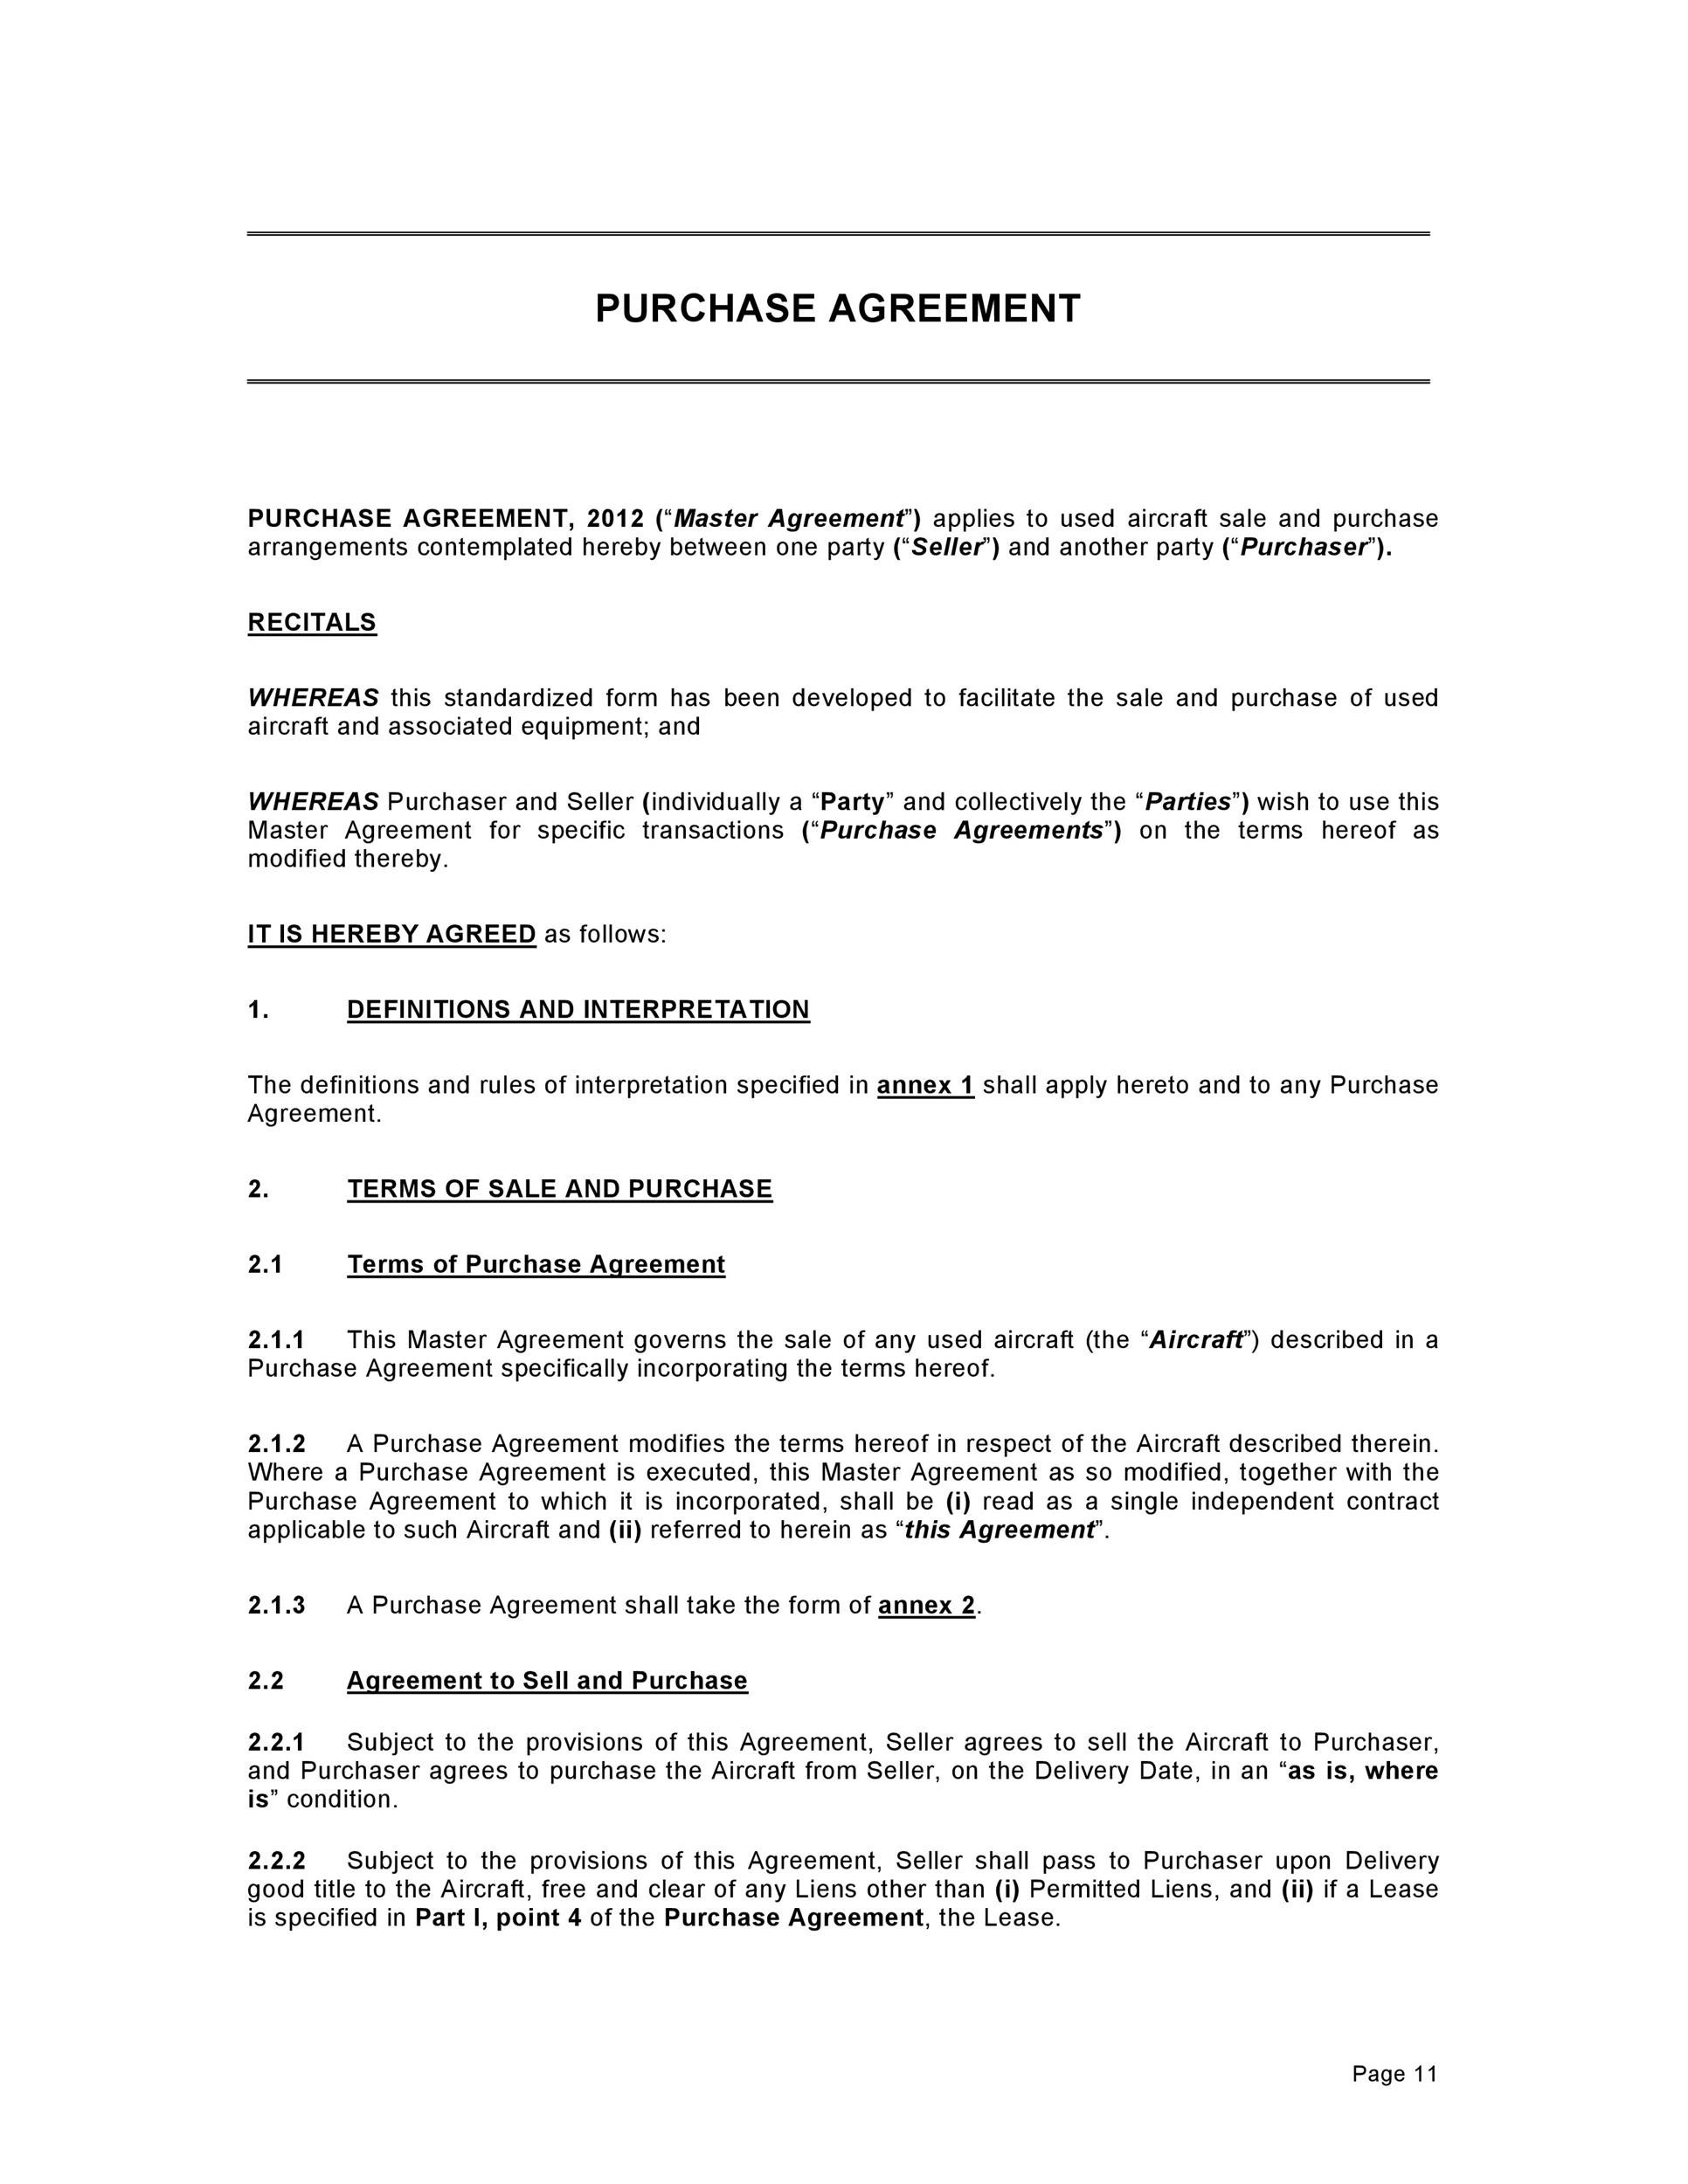 Divine image for printable purchase agreement